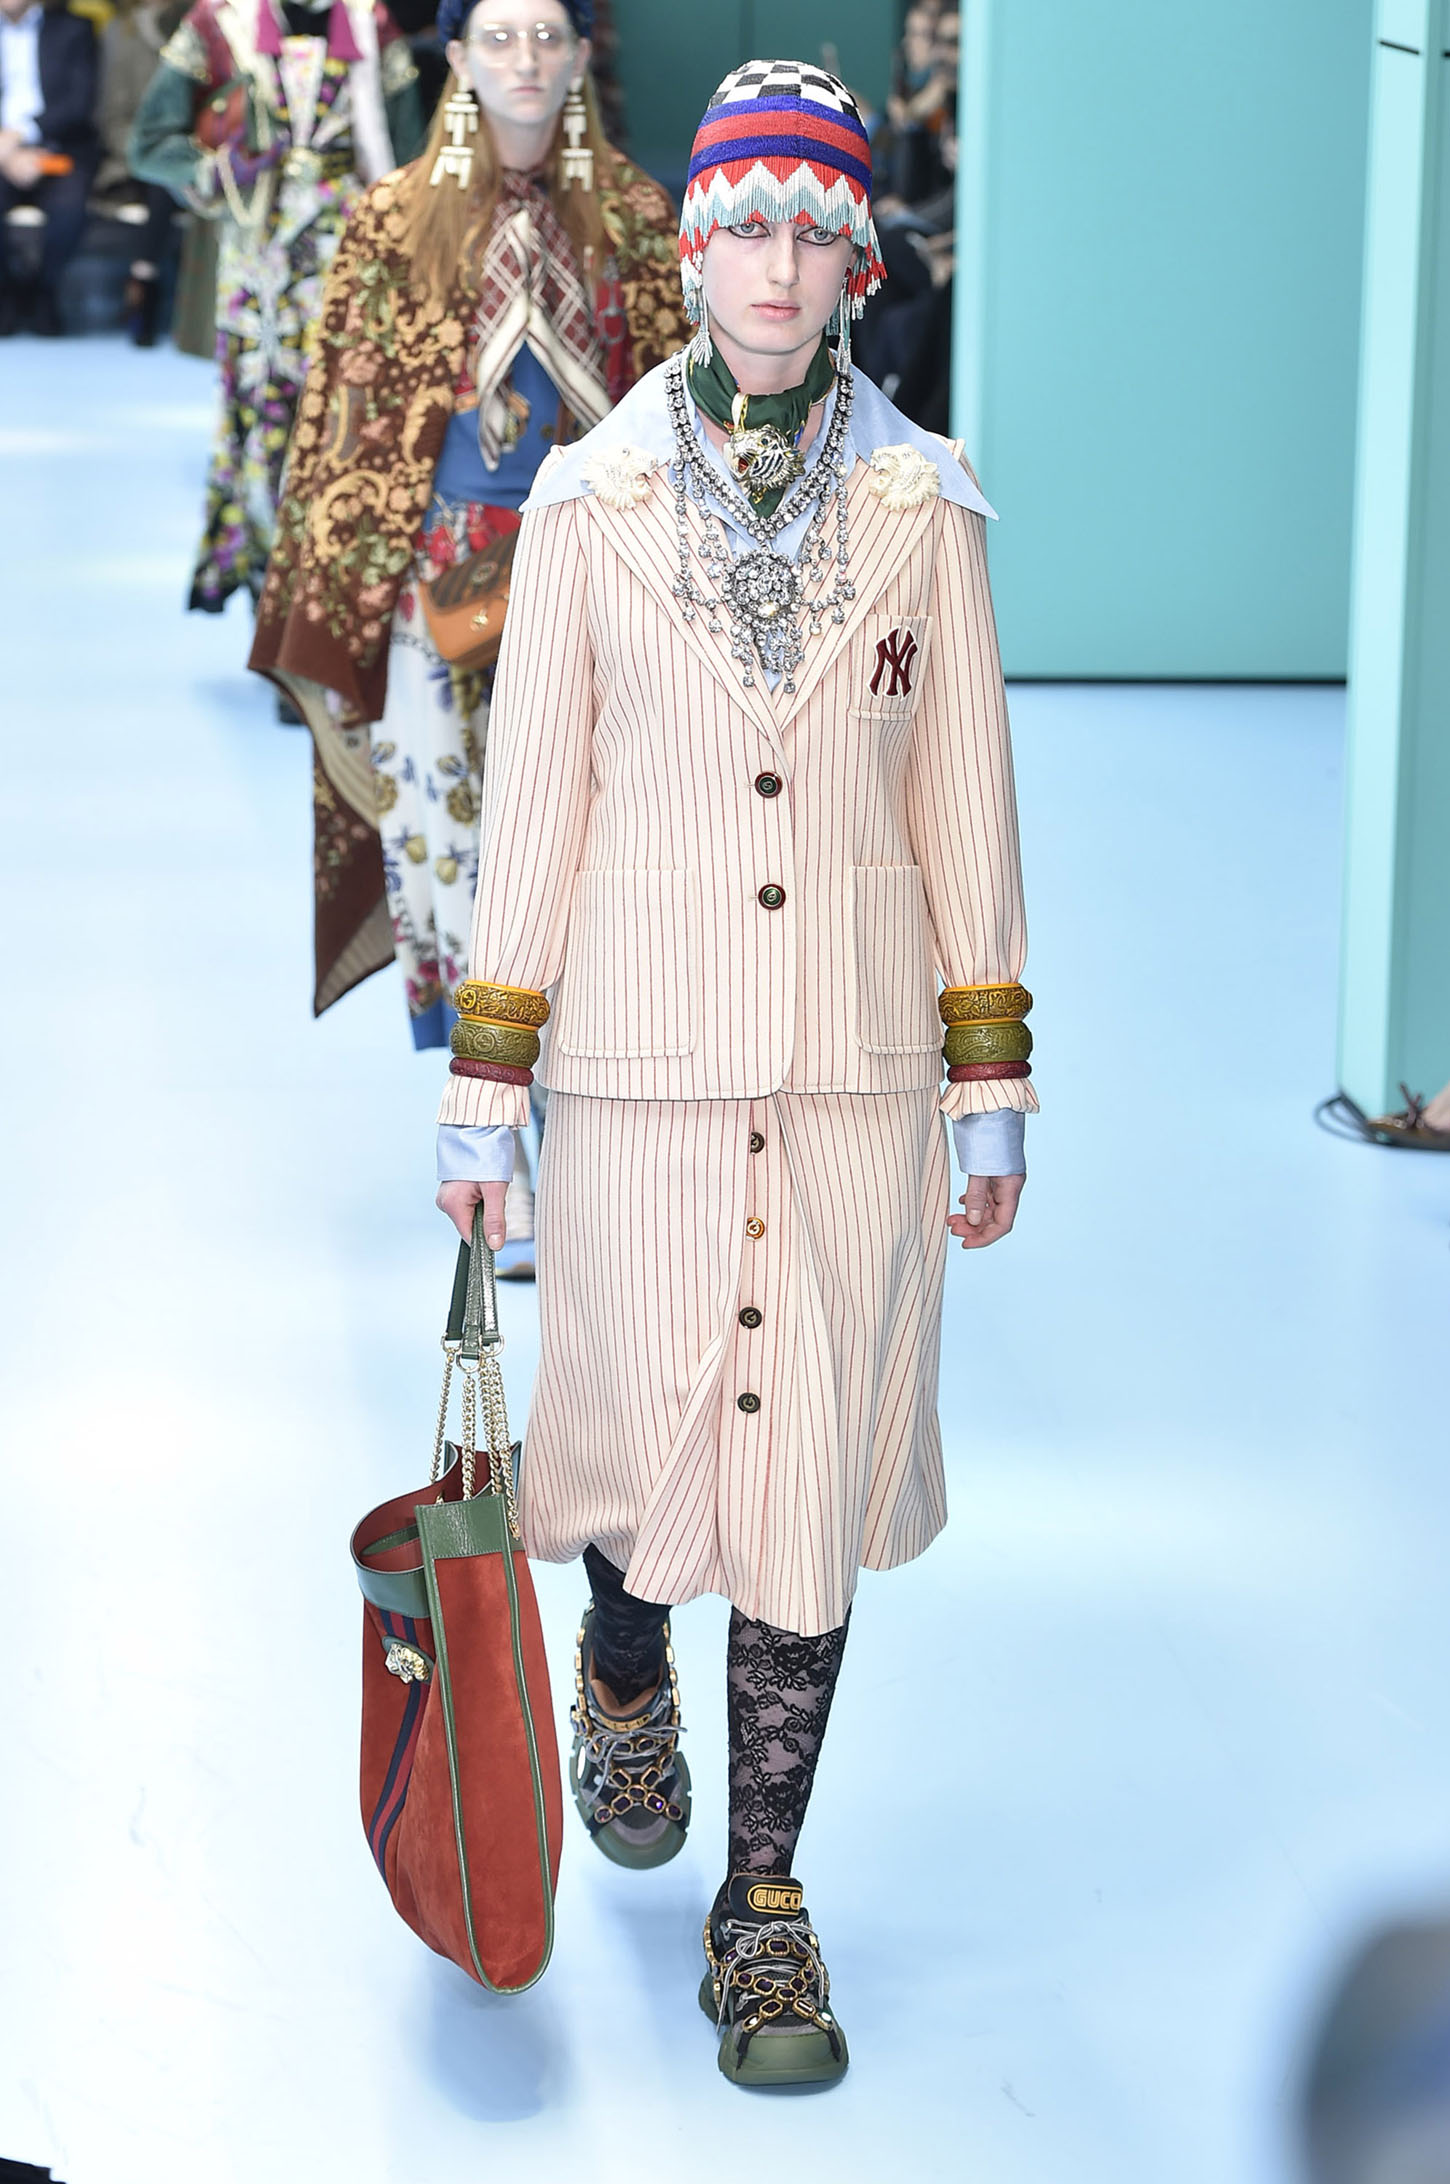 MILAN, ITALY - FEBRUARY 21:  A model walks the runway at the Gucci Autumn Winter 2018 fashion show during Milan Fashion Week on February 21, 2018 in Milan, Italy.  (Photo by Catwalking/Getty Images)